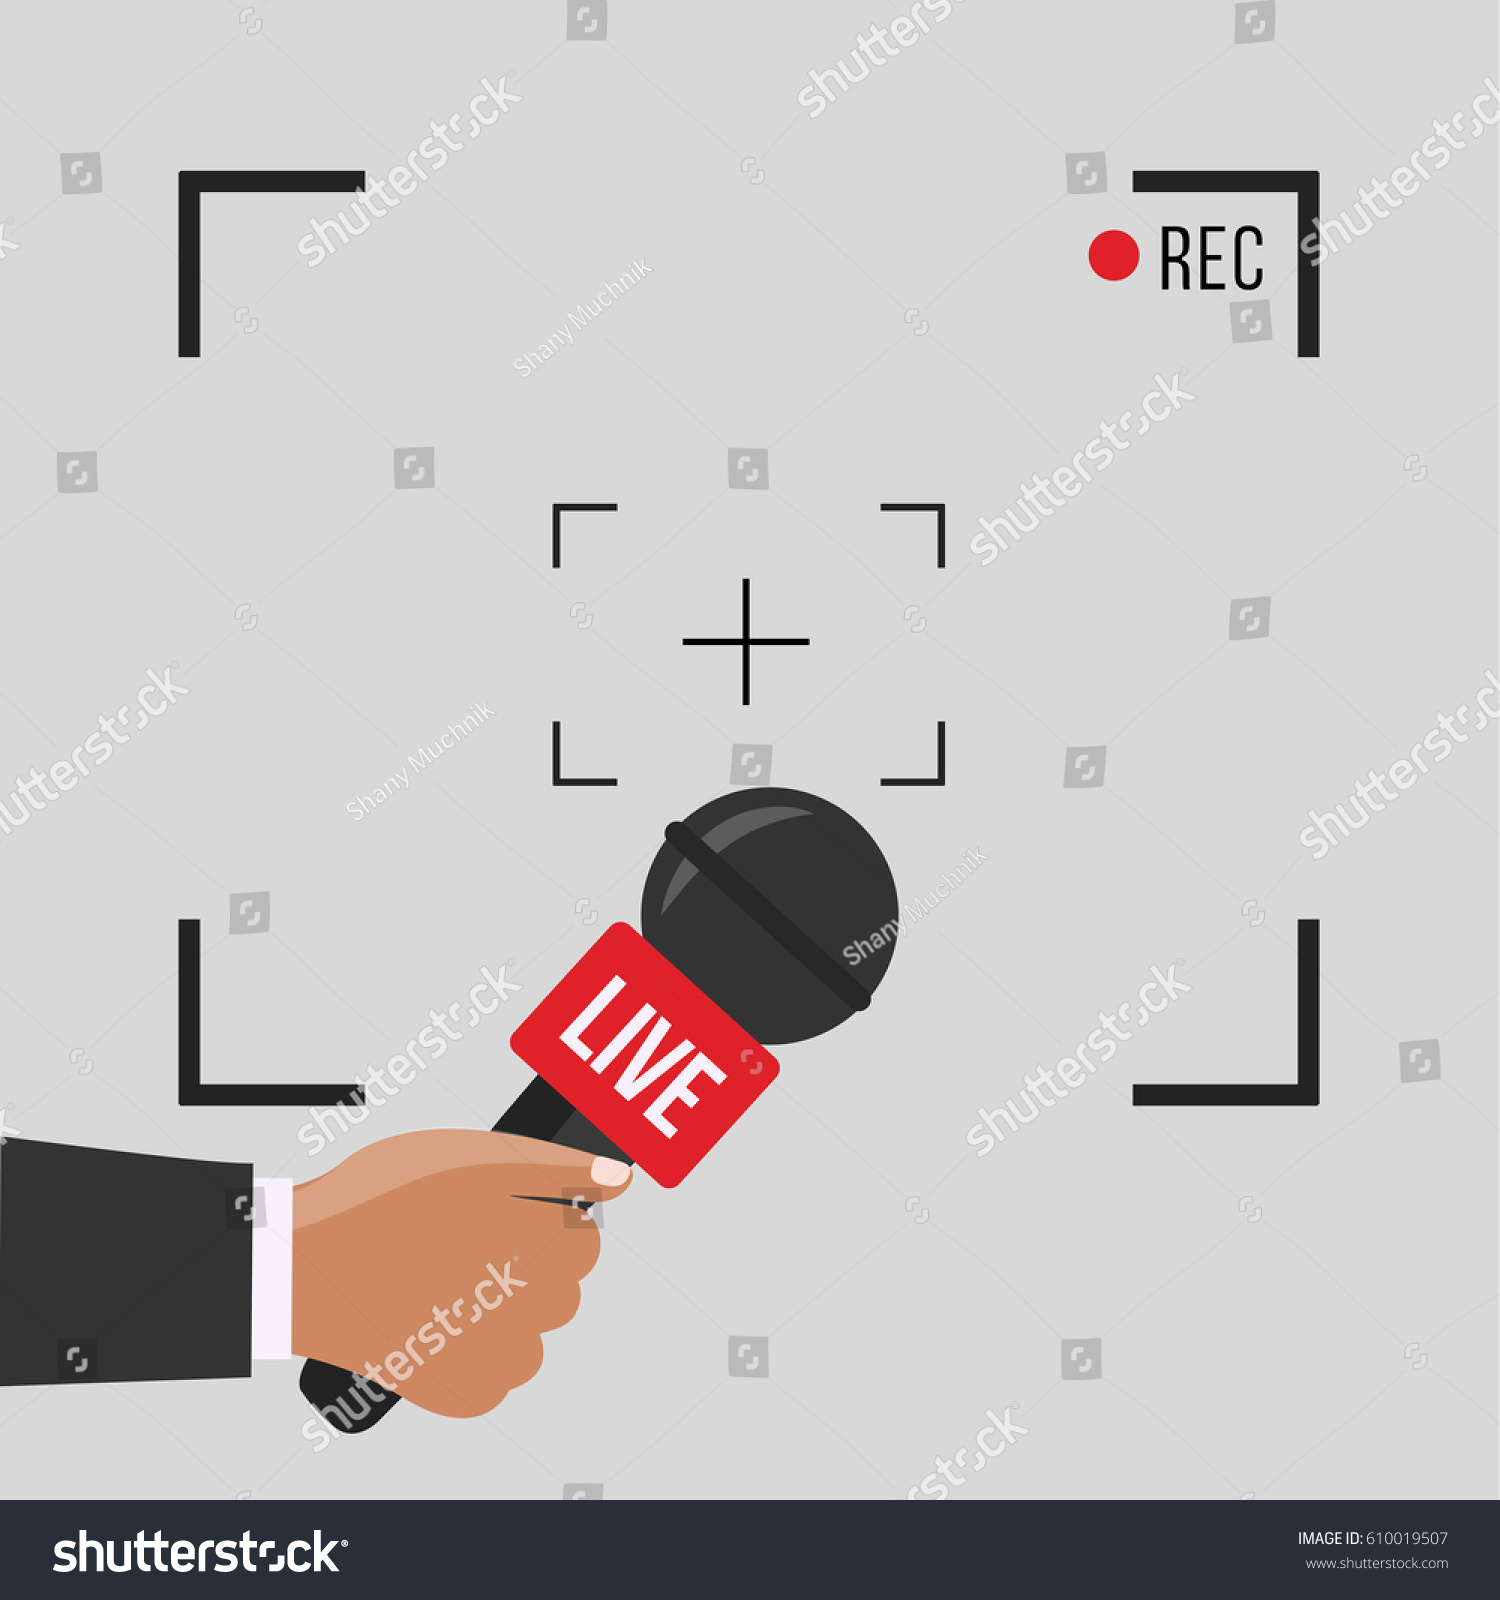 News Illustration On Focus TV Live Stock Vector (Royalty Free ...